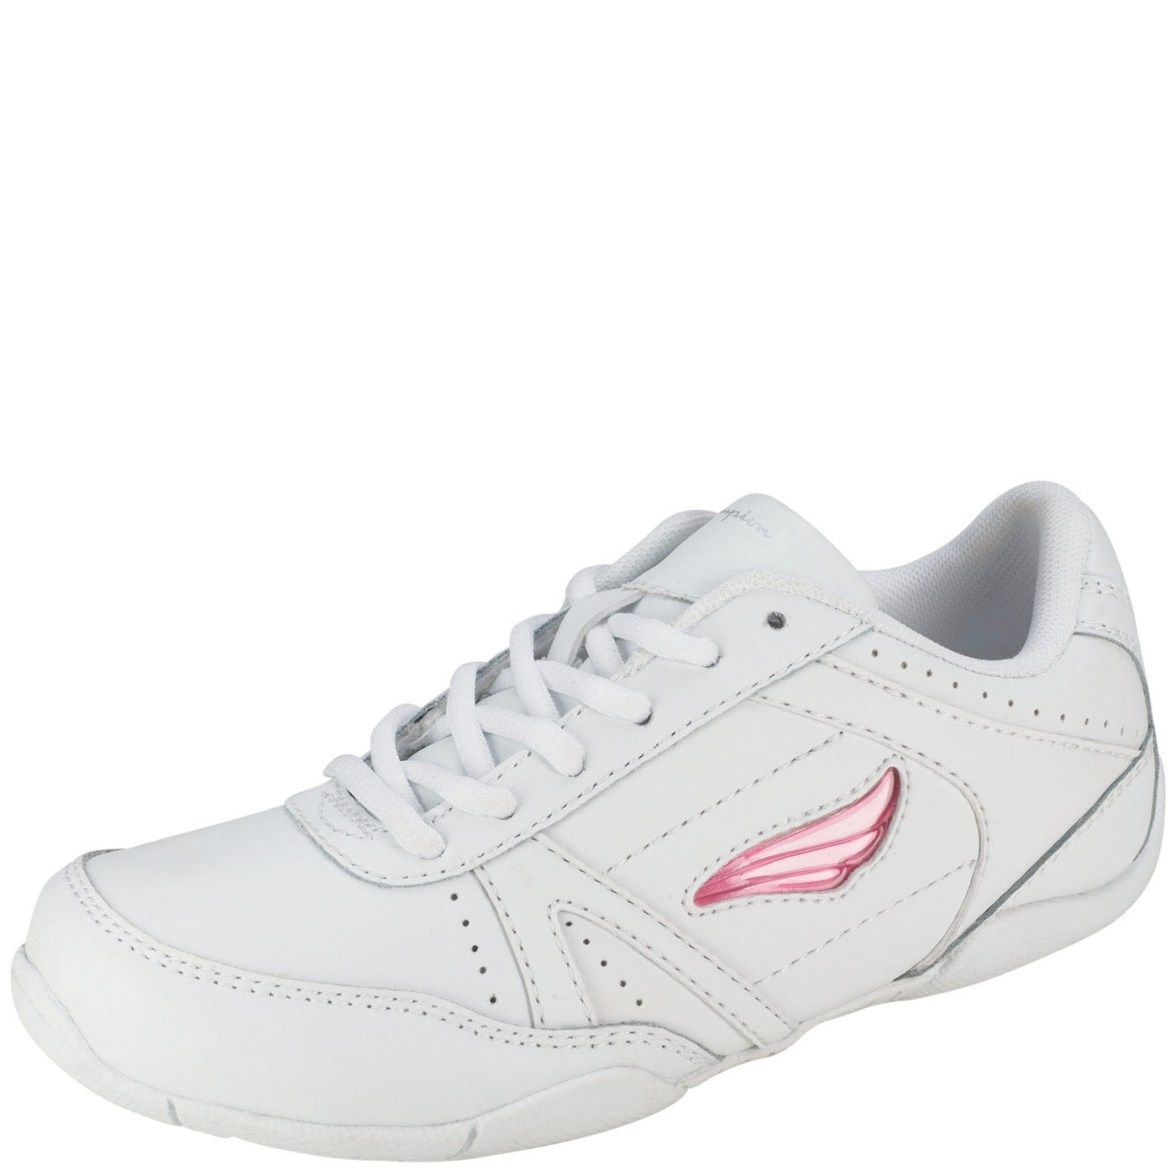 Cheerleading shoes, Cheer shoes, Kids